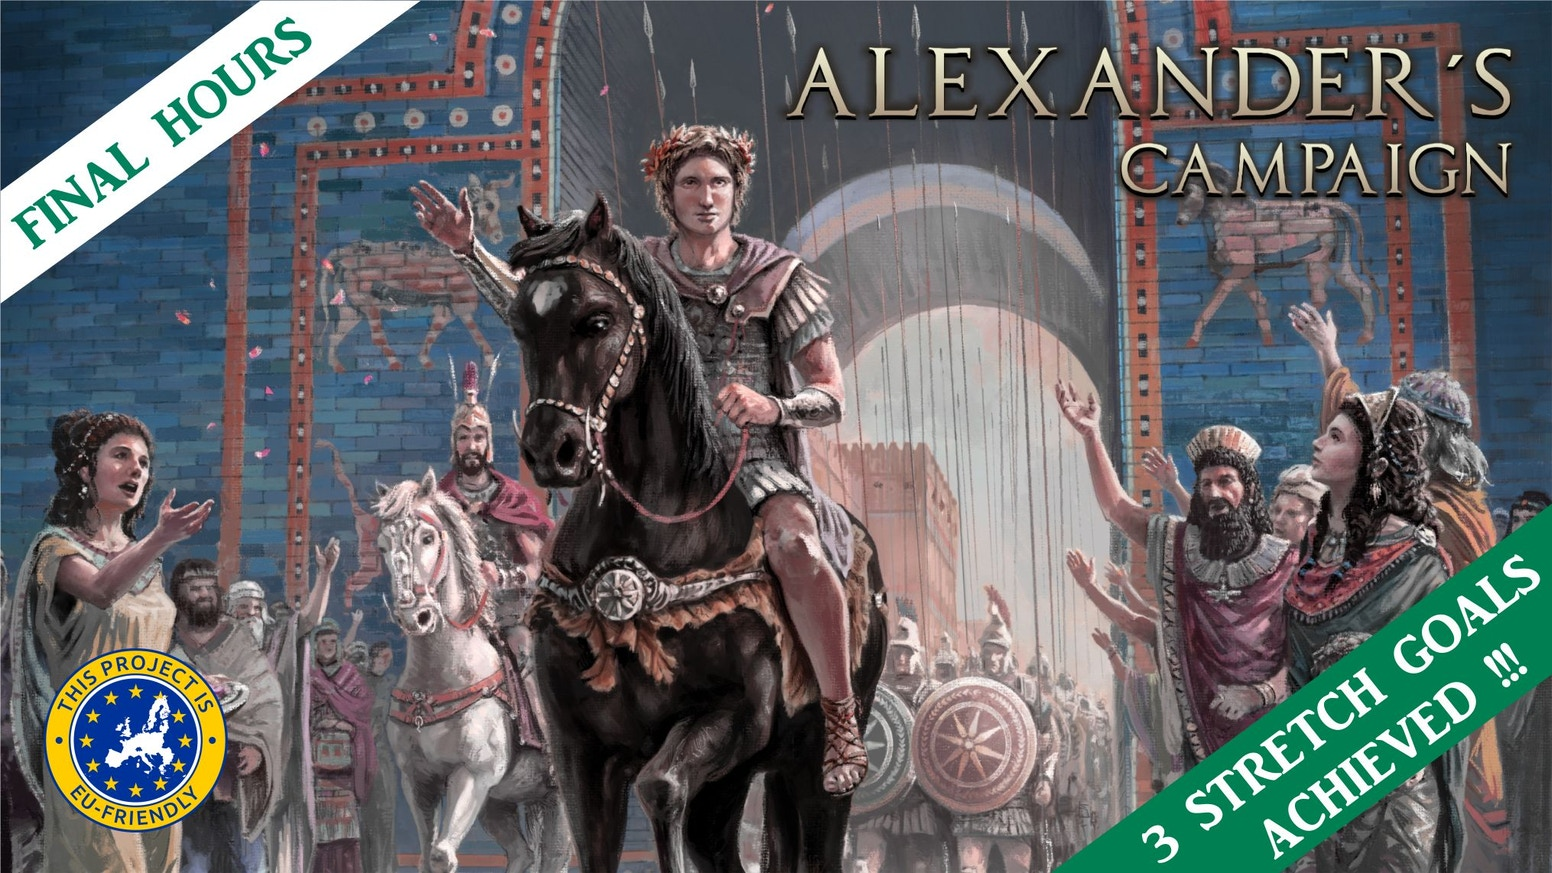 Join Alexander the Great as his general in a fast paced tactical historical and educational board game.